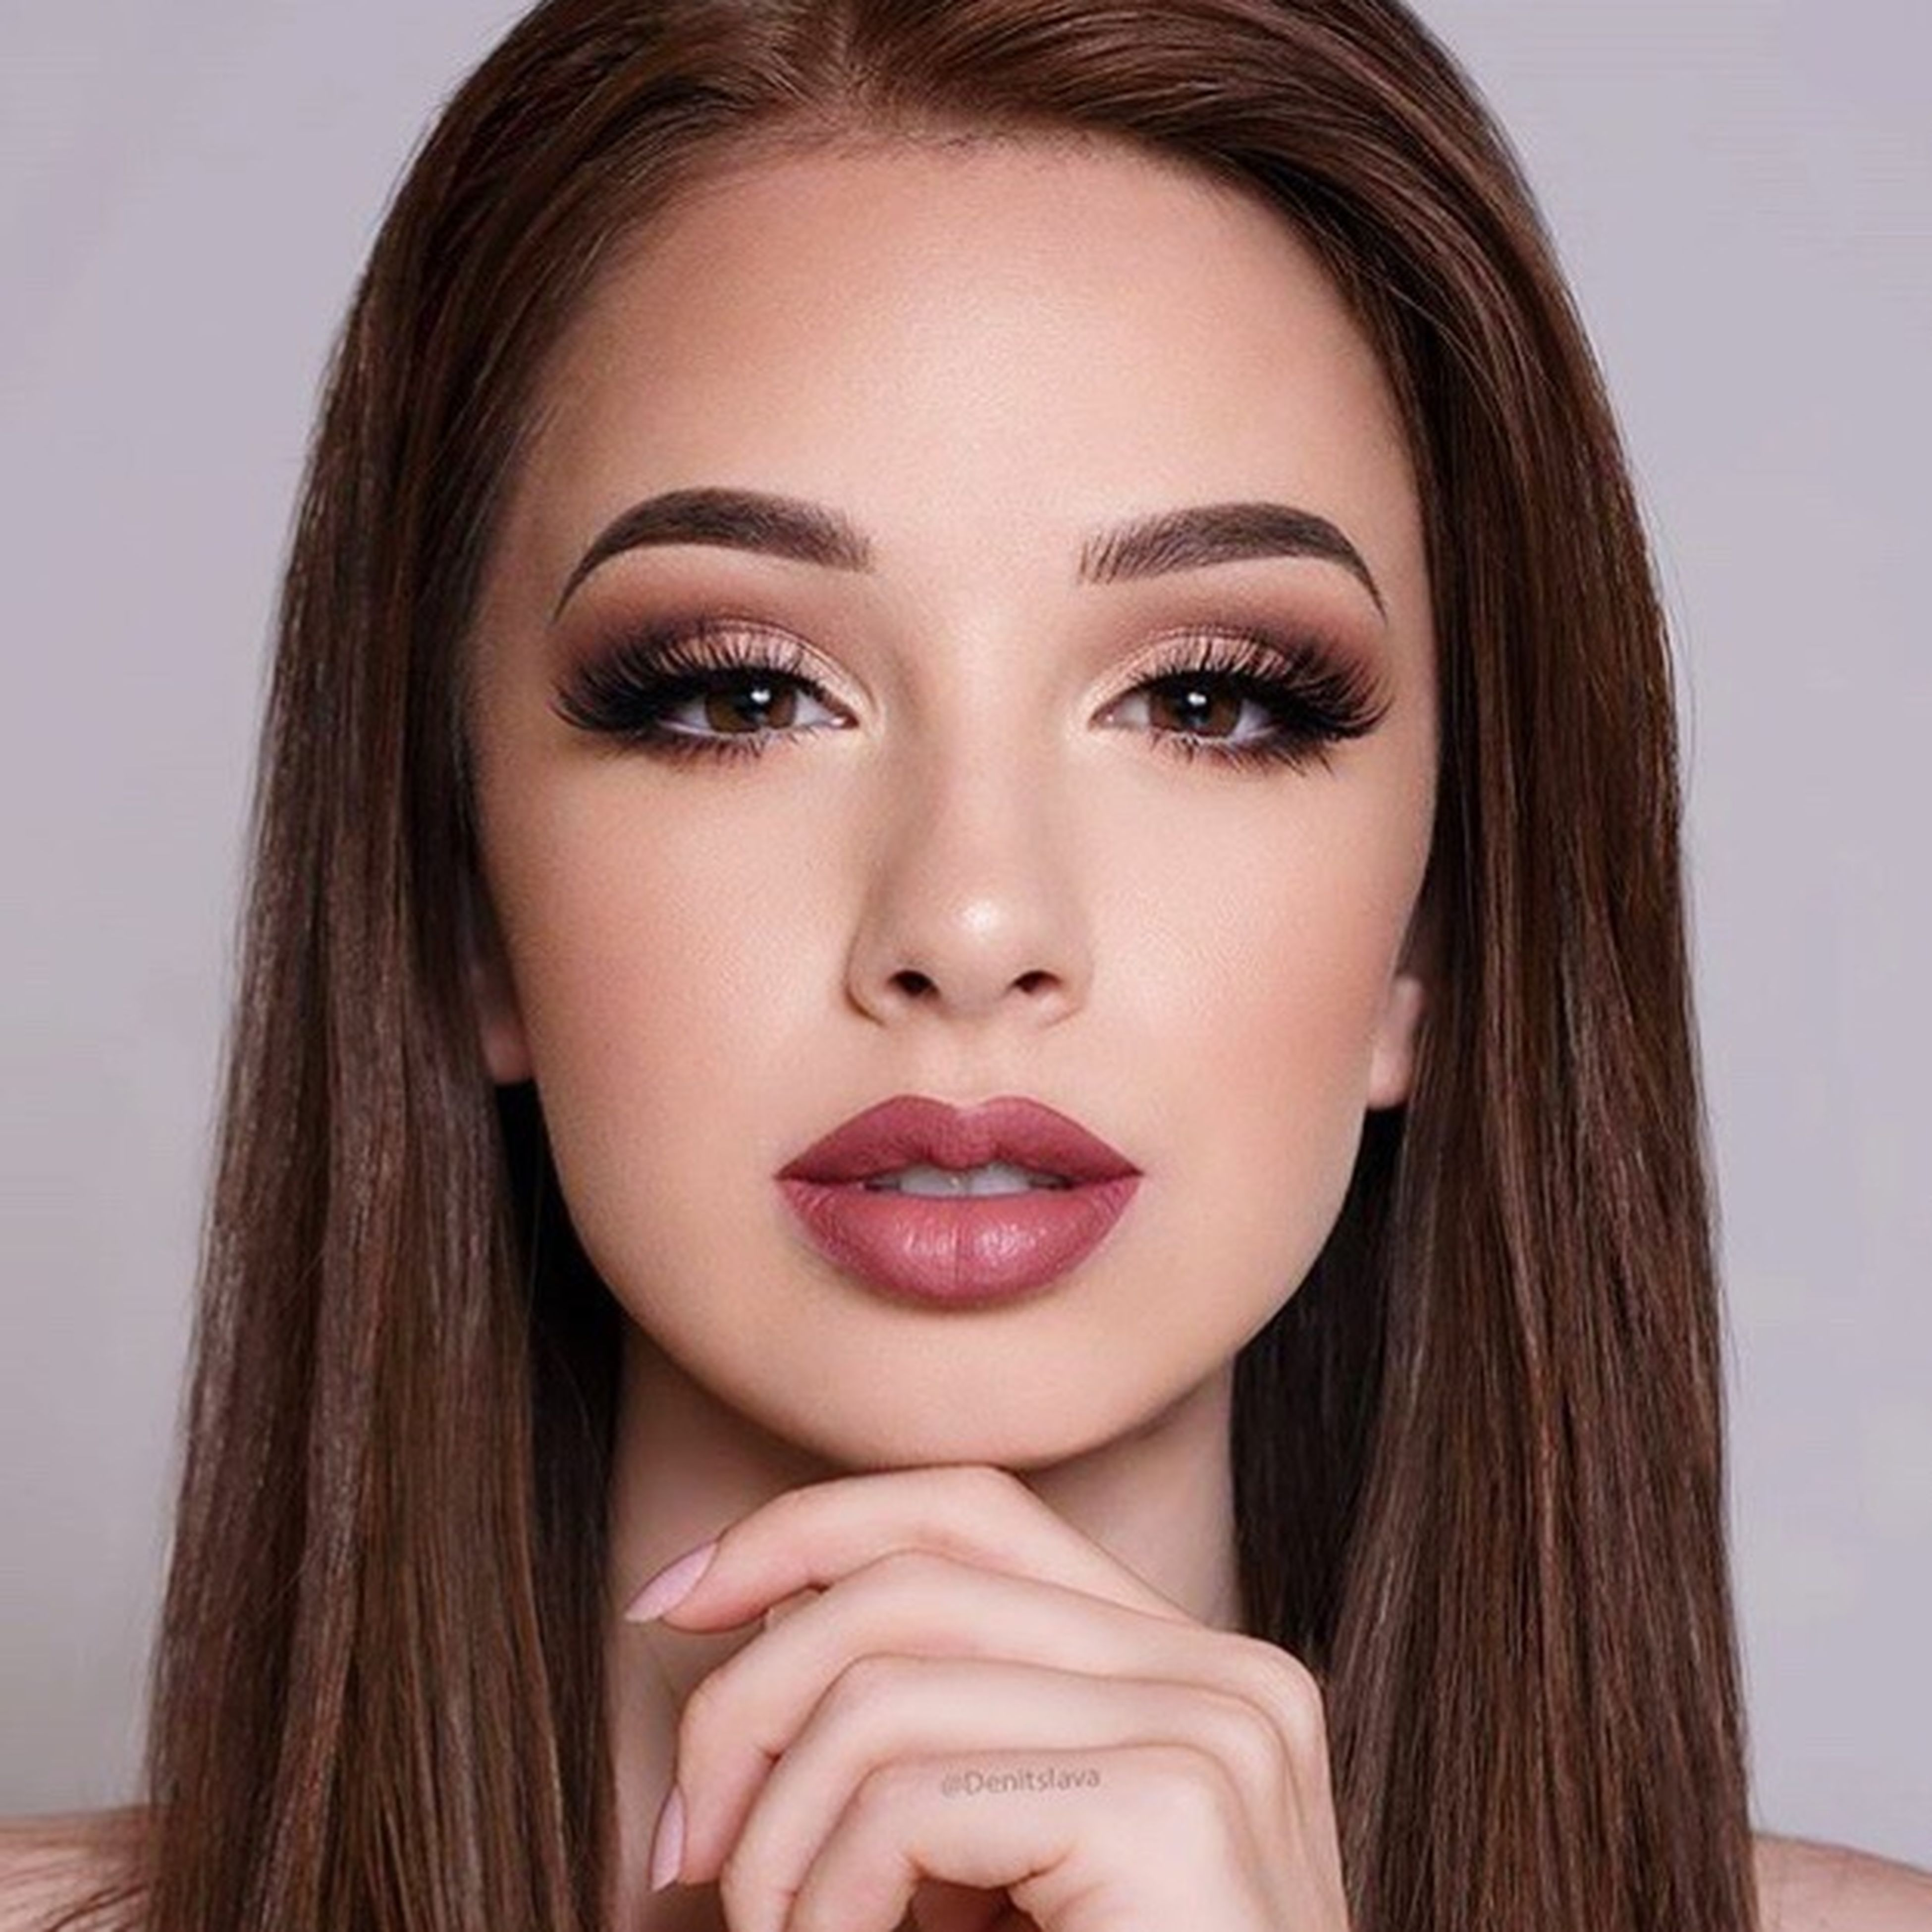 young women, young adult, looking at camera, portrait, person, headshot, beauty, long hair, lifestyles, red lipstick, femininity, front view, make-up, human lips, human face, pink color, eyeshadow